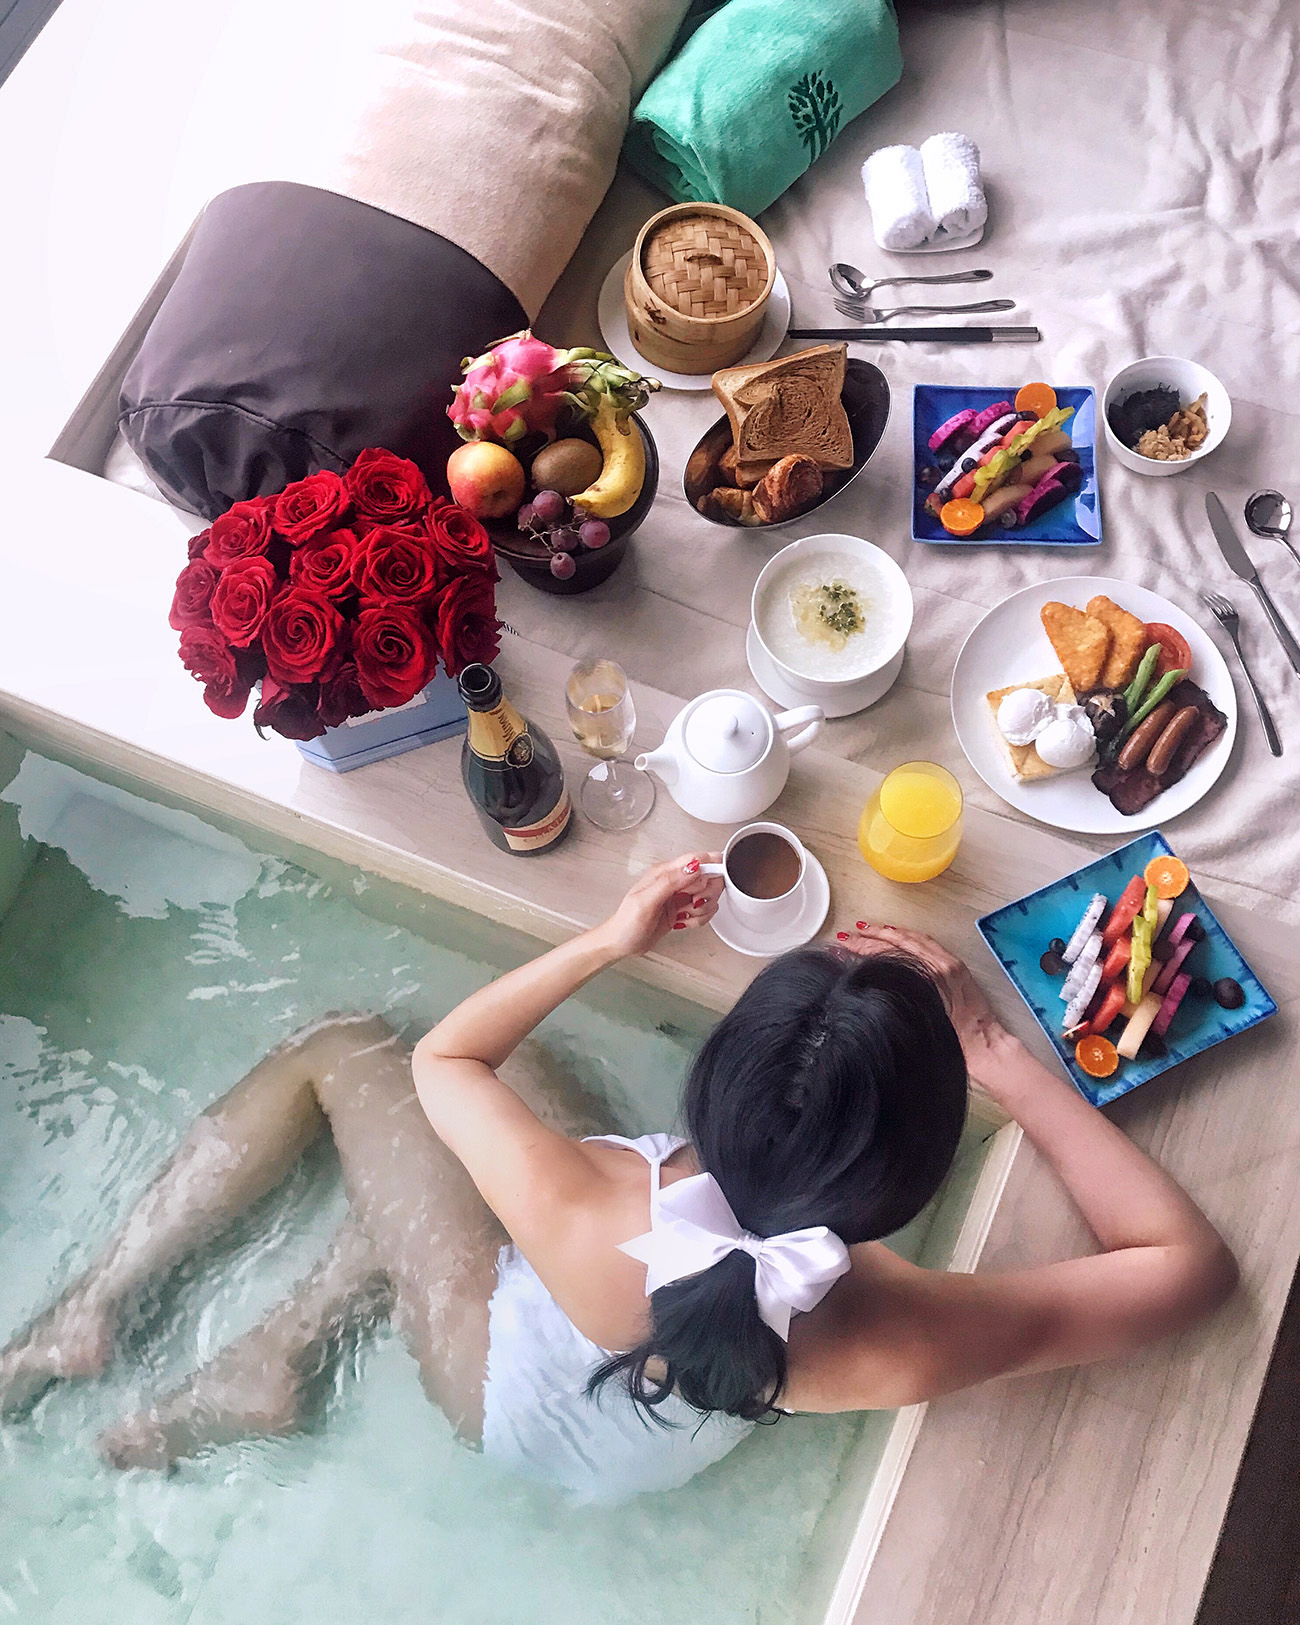 Banyan Tree Shanghai on the Bund - Hotel Room with a Pool and a View   Of Leather and Lace - Fashion & Travel Blog by Tina Lee   hotel review, shanghai city, food flatlay, breakfast time